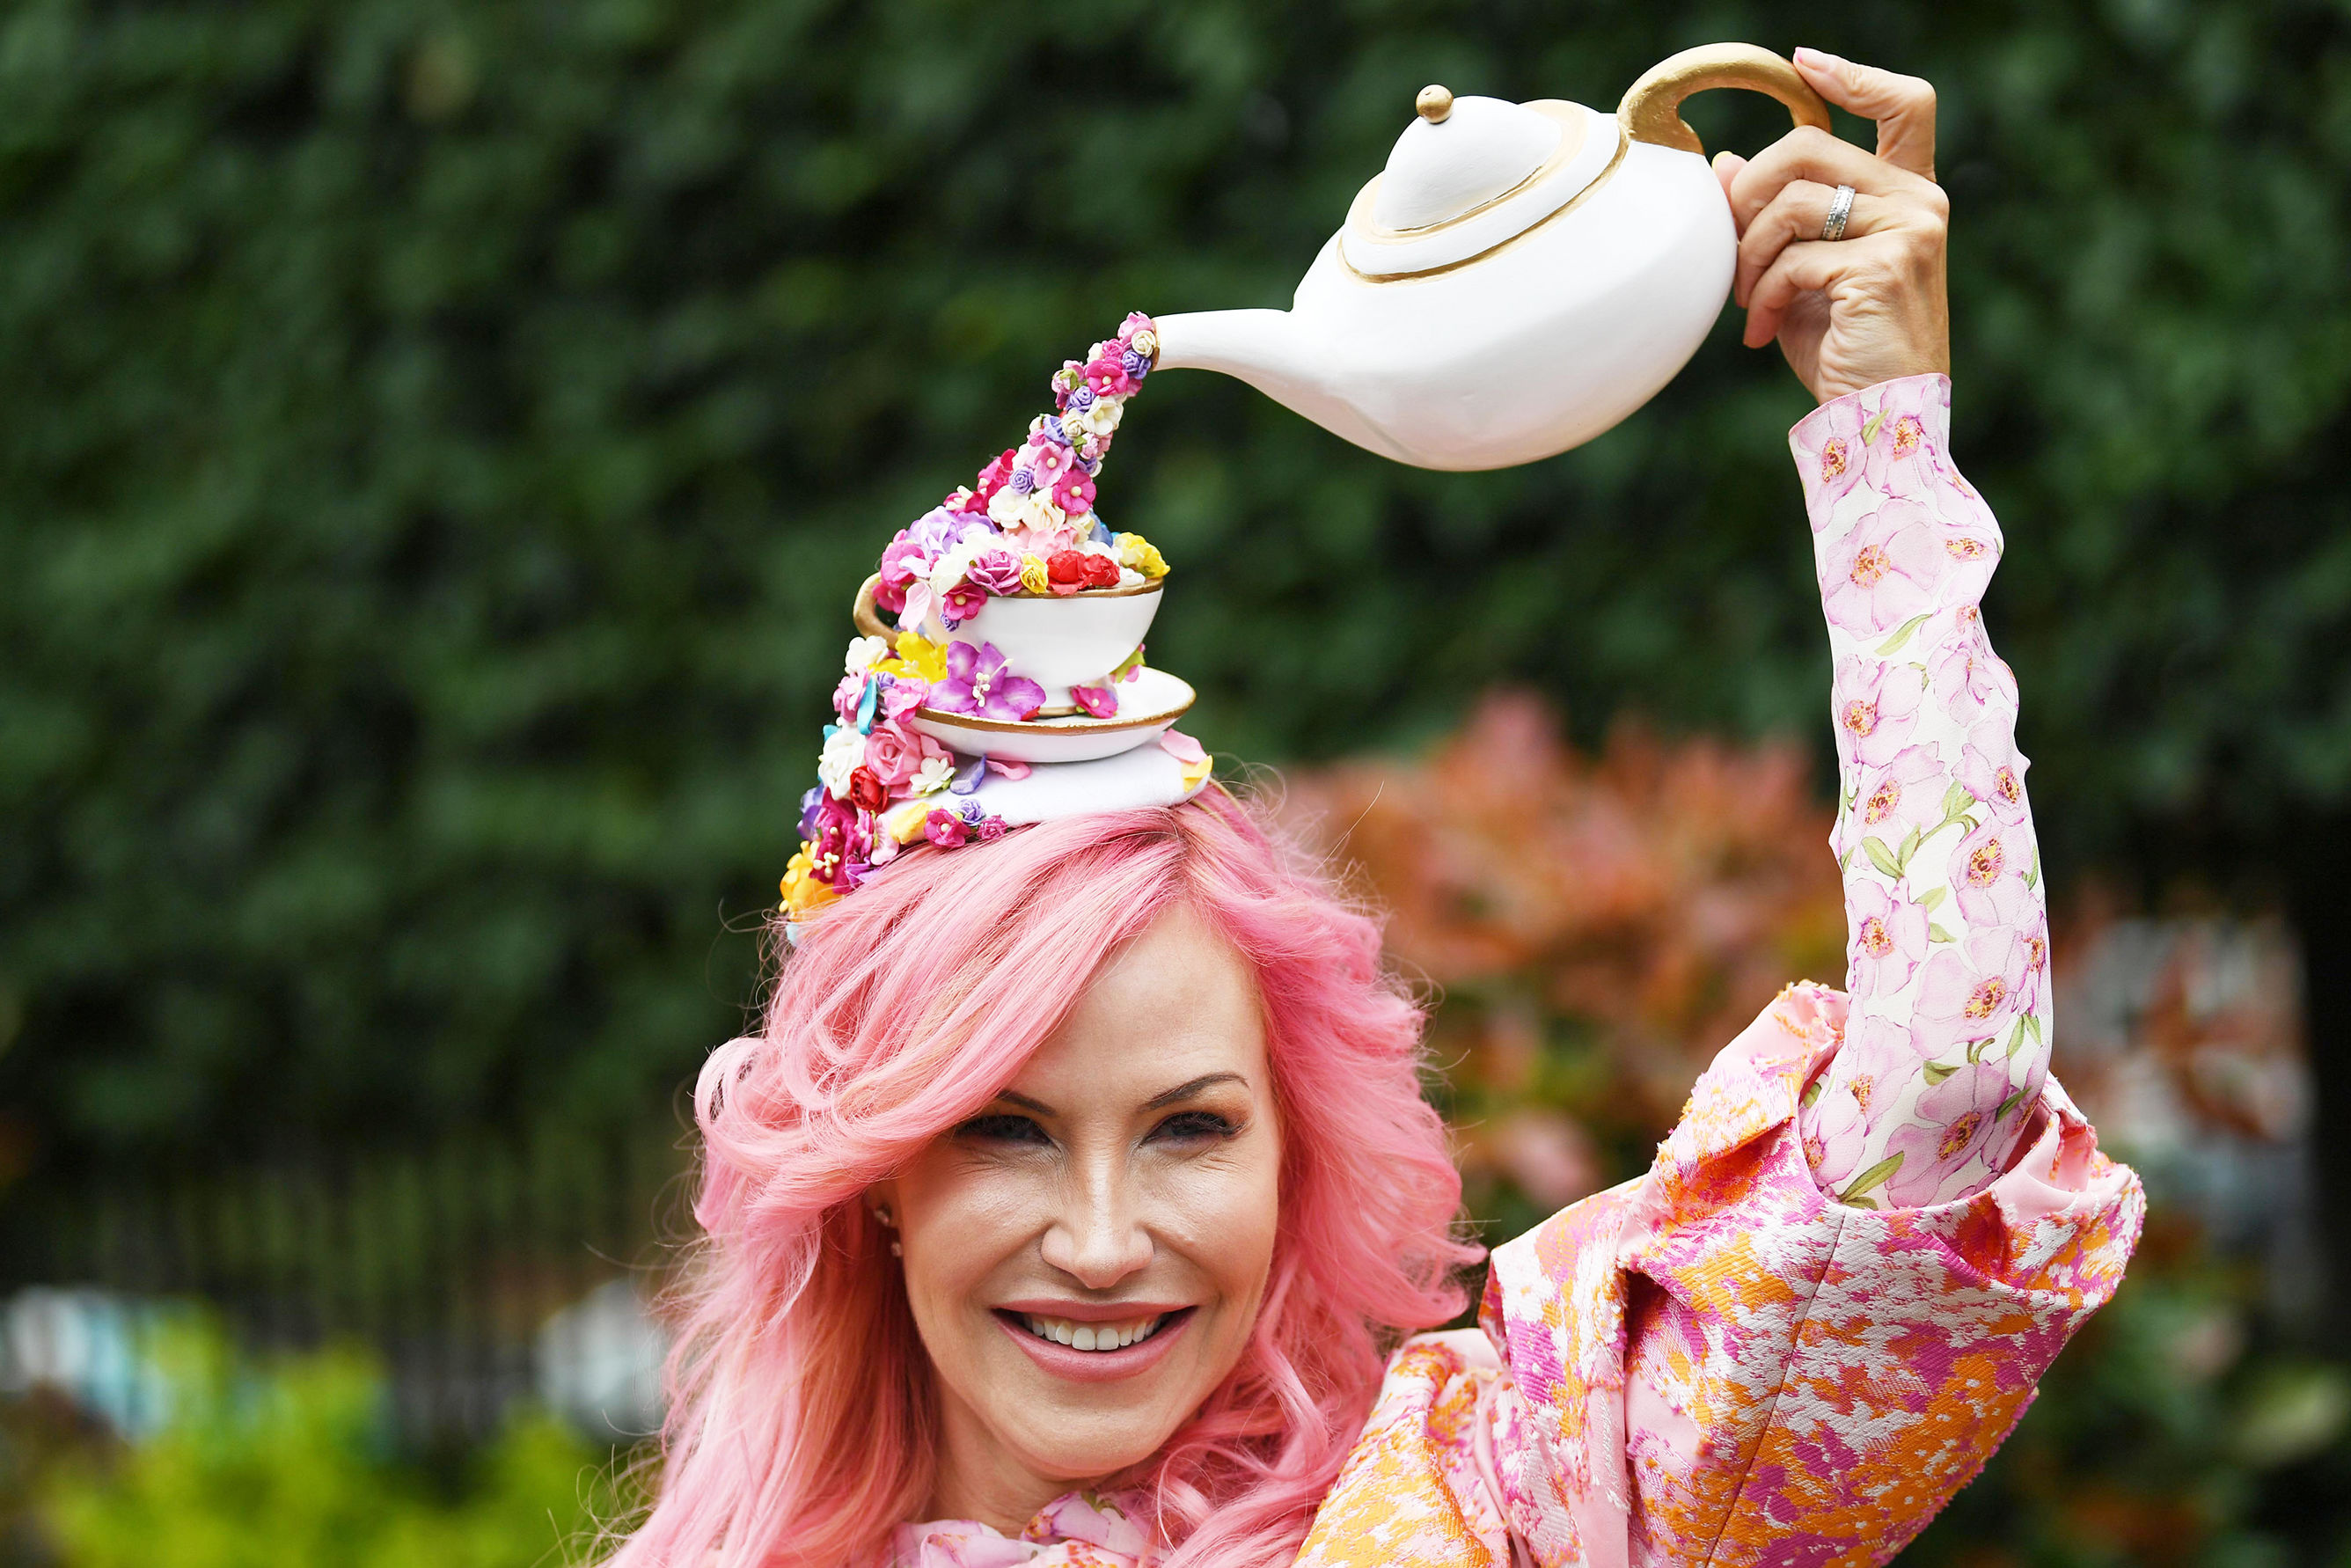 It's Ladies' Day at Royal Ascot! See the 9 Florida Friends Who Are Turning Heads in Wacky Hats